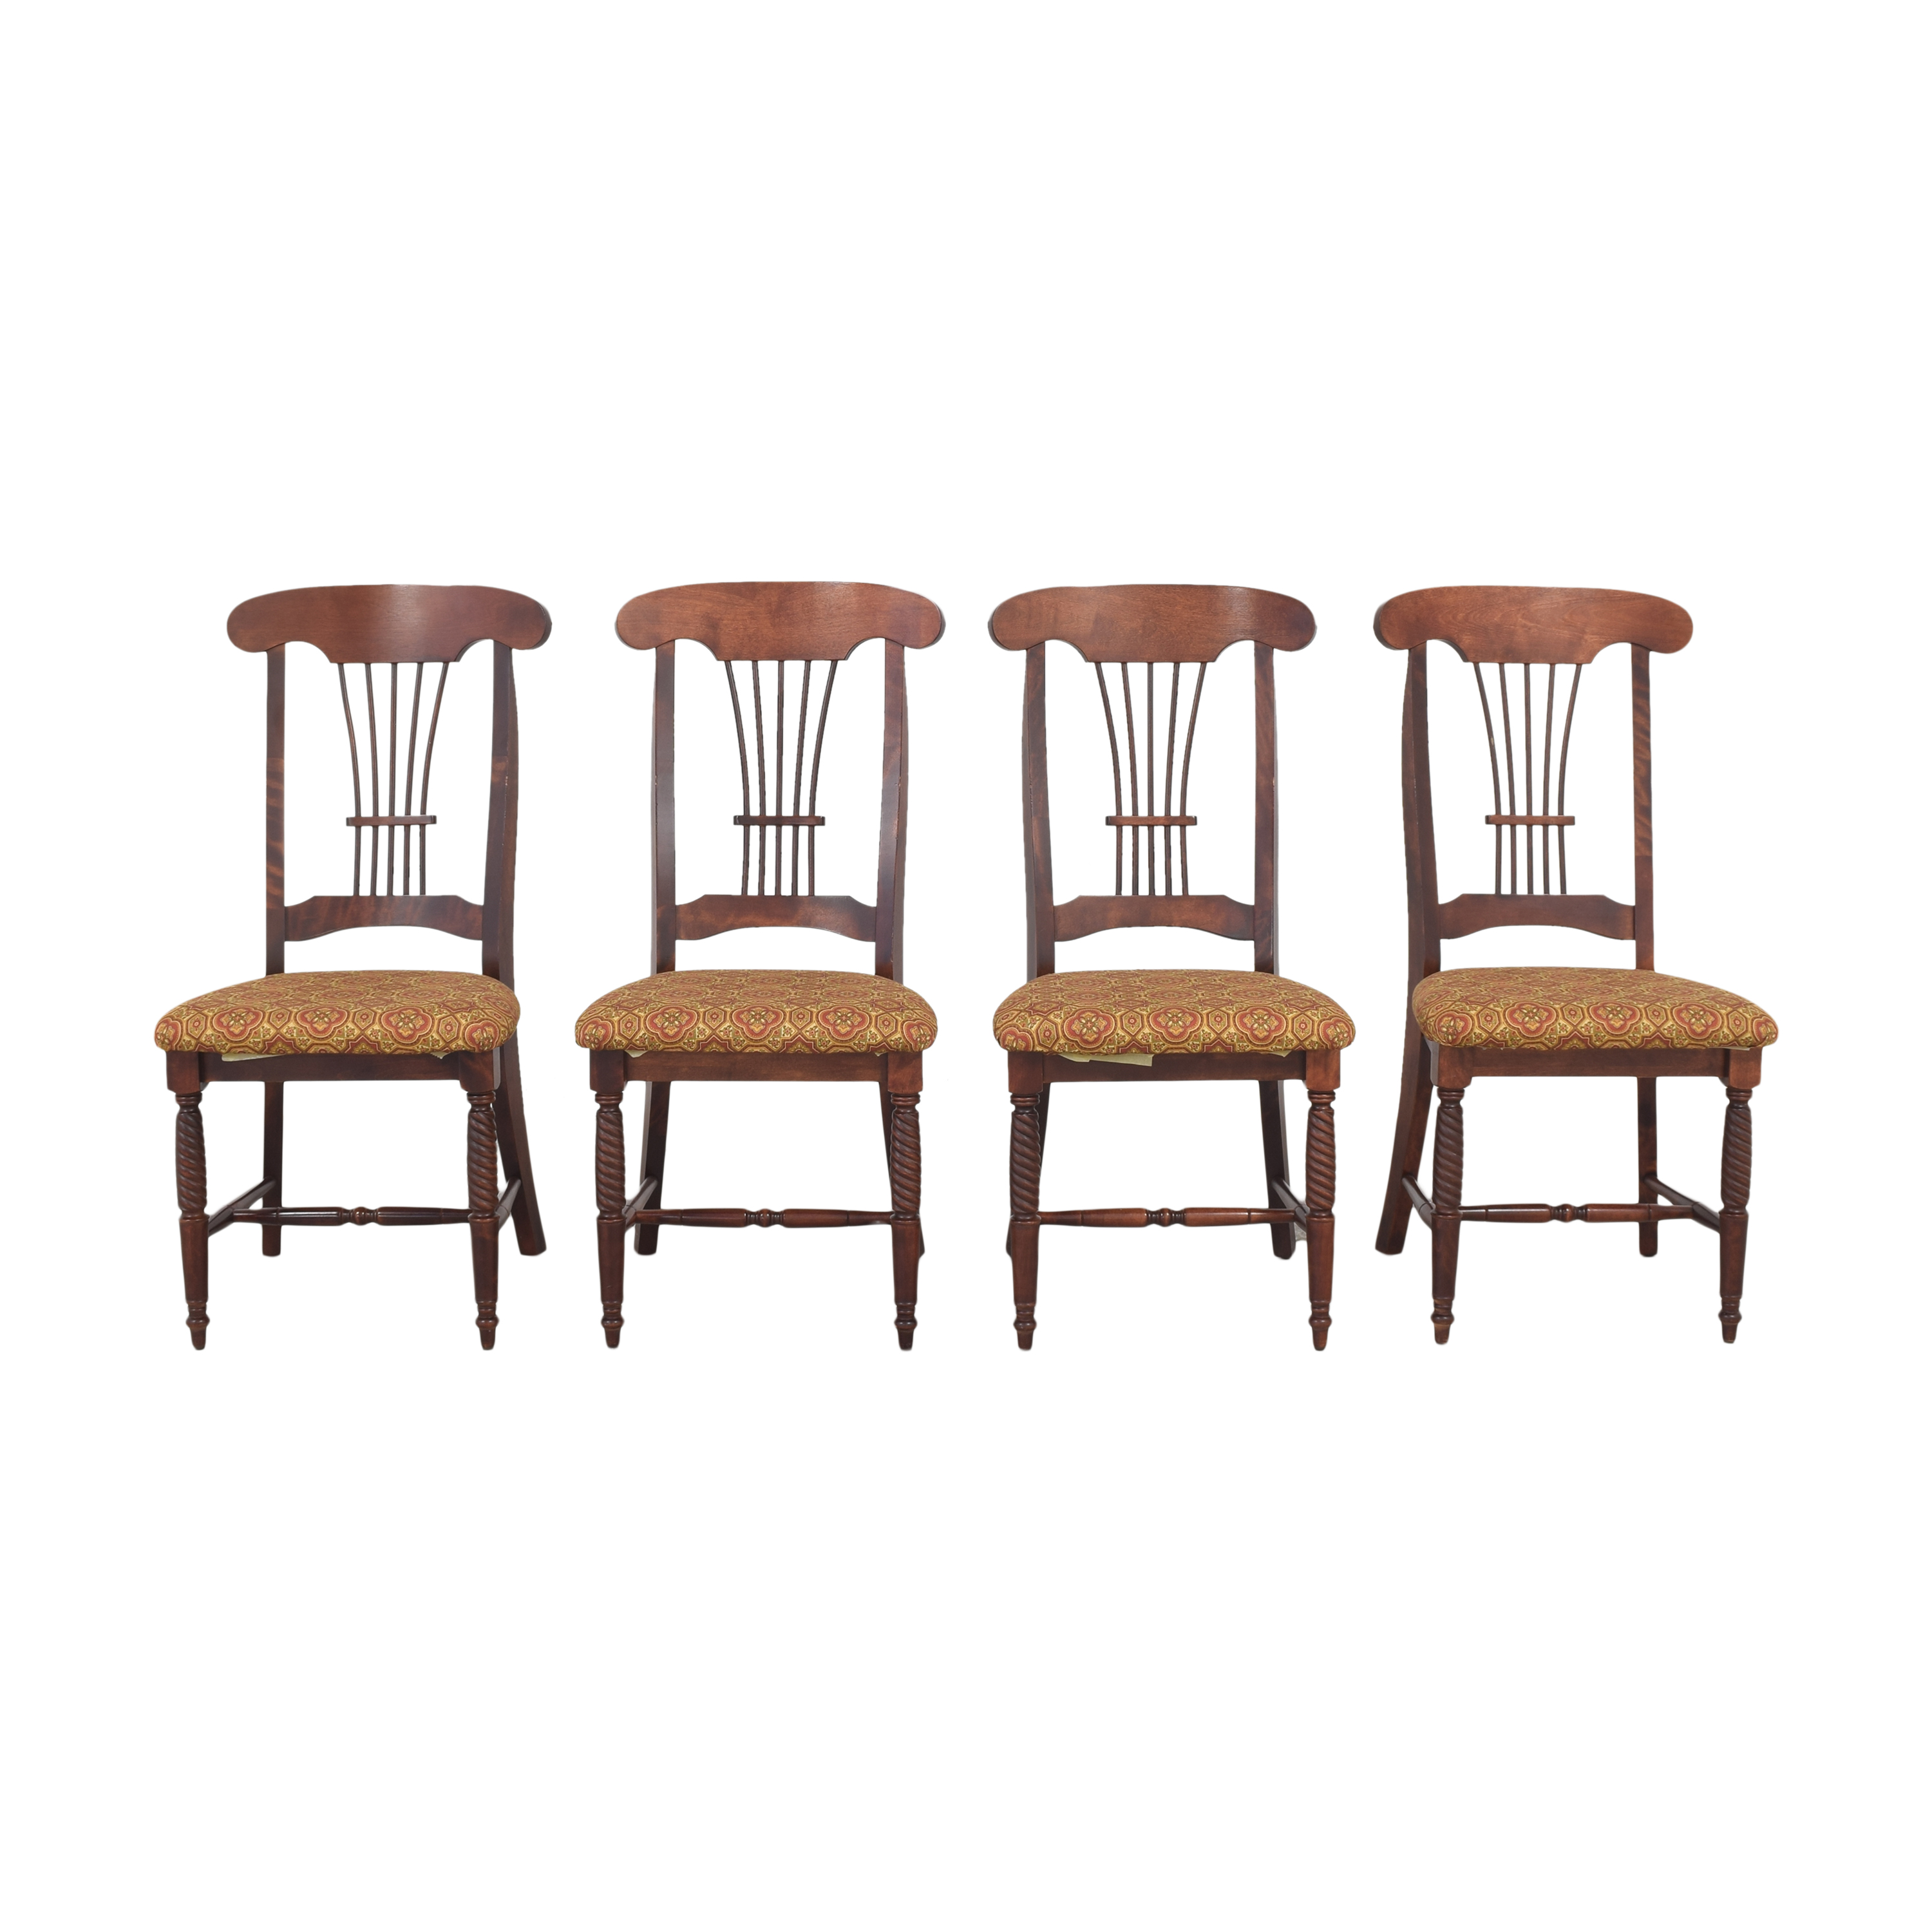 Canadel Canadel Dining Chairs discount